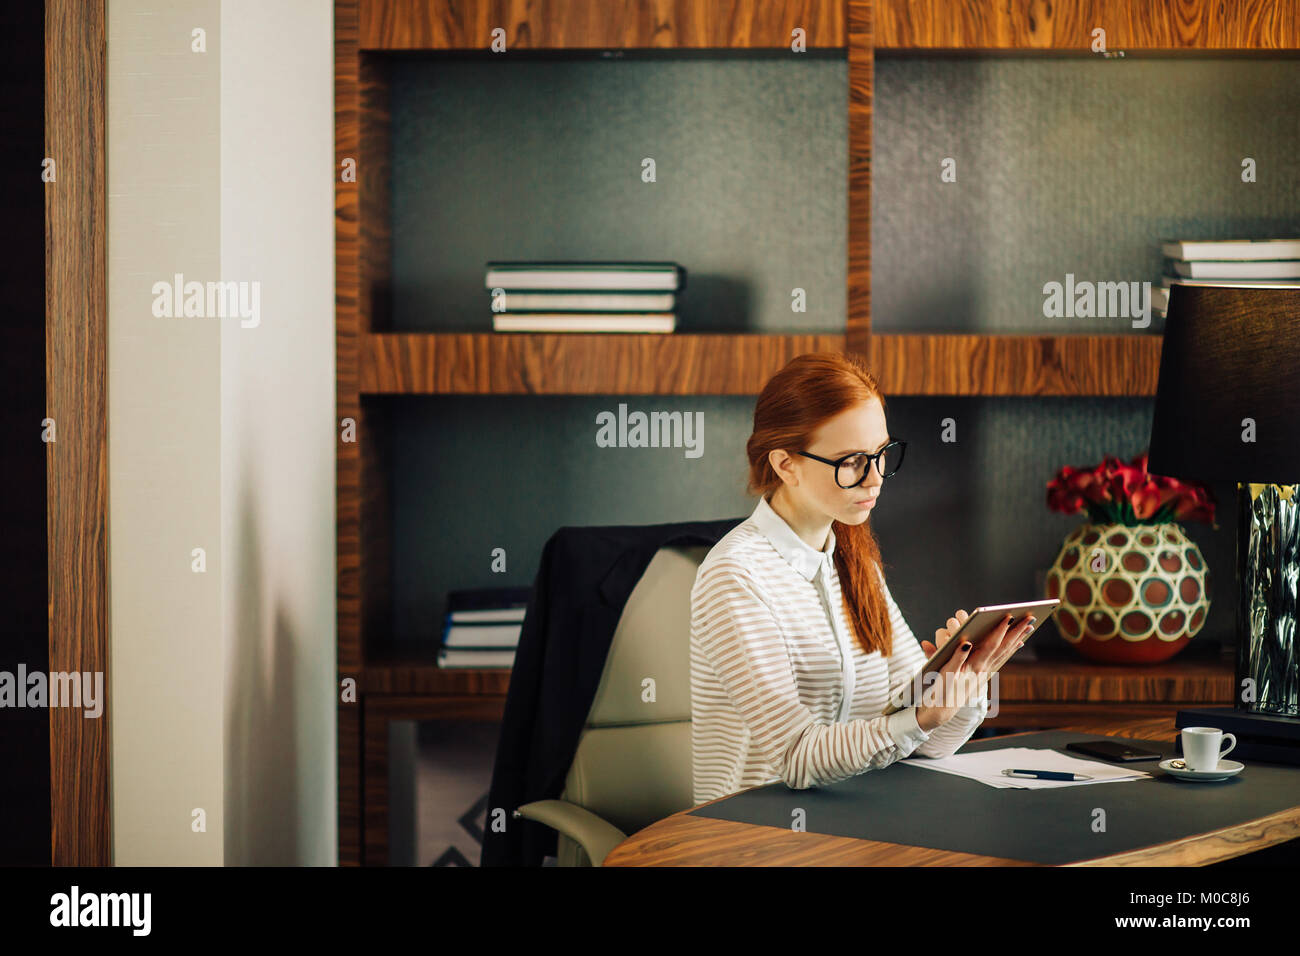 Businesswoman wearing glasses using digital tablet in office Photo Stock